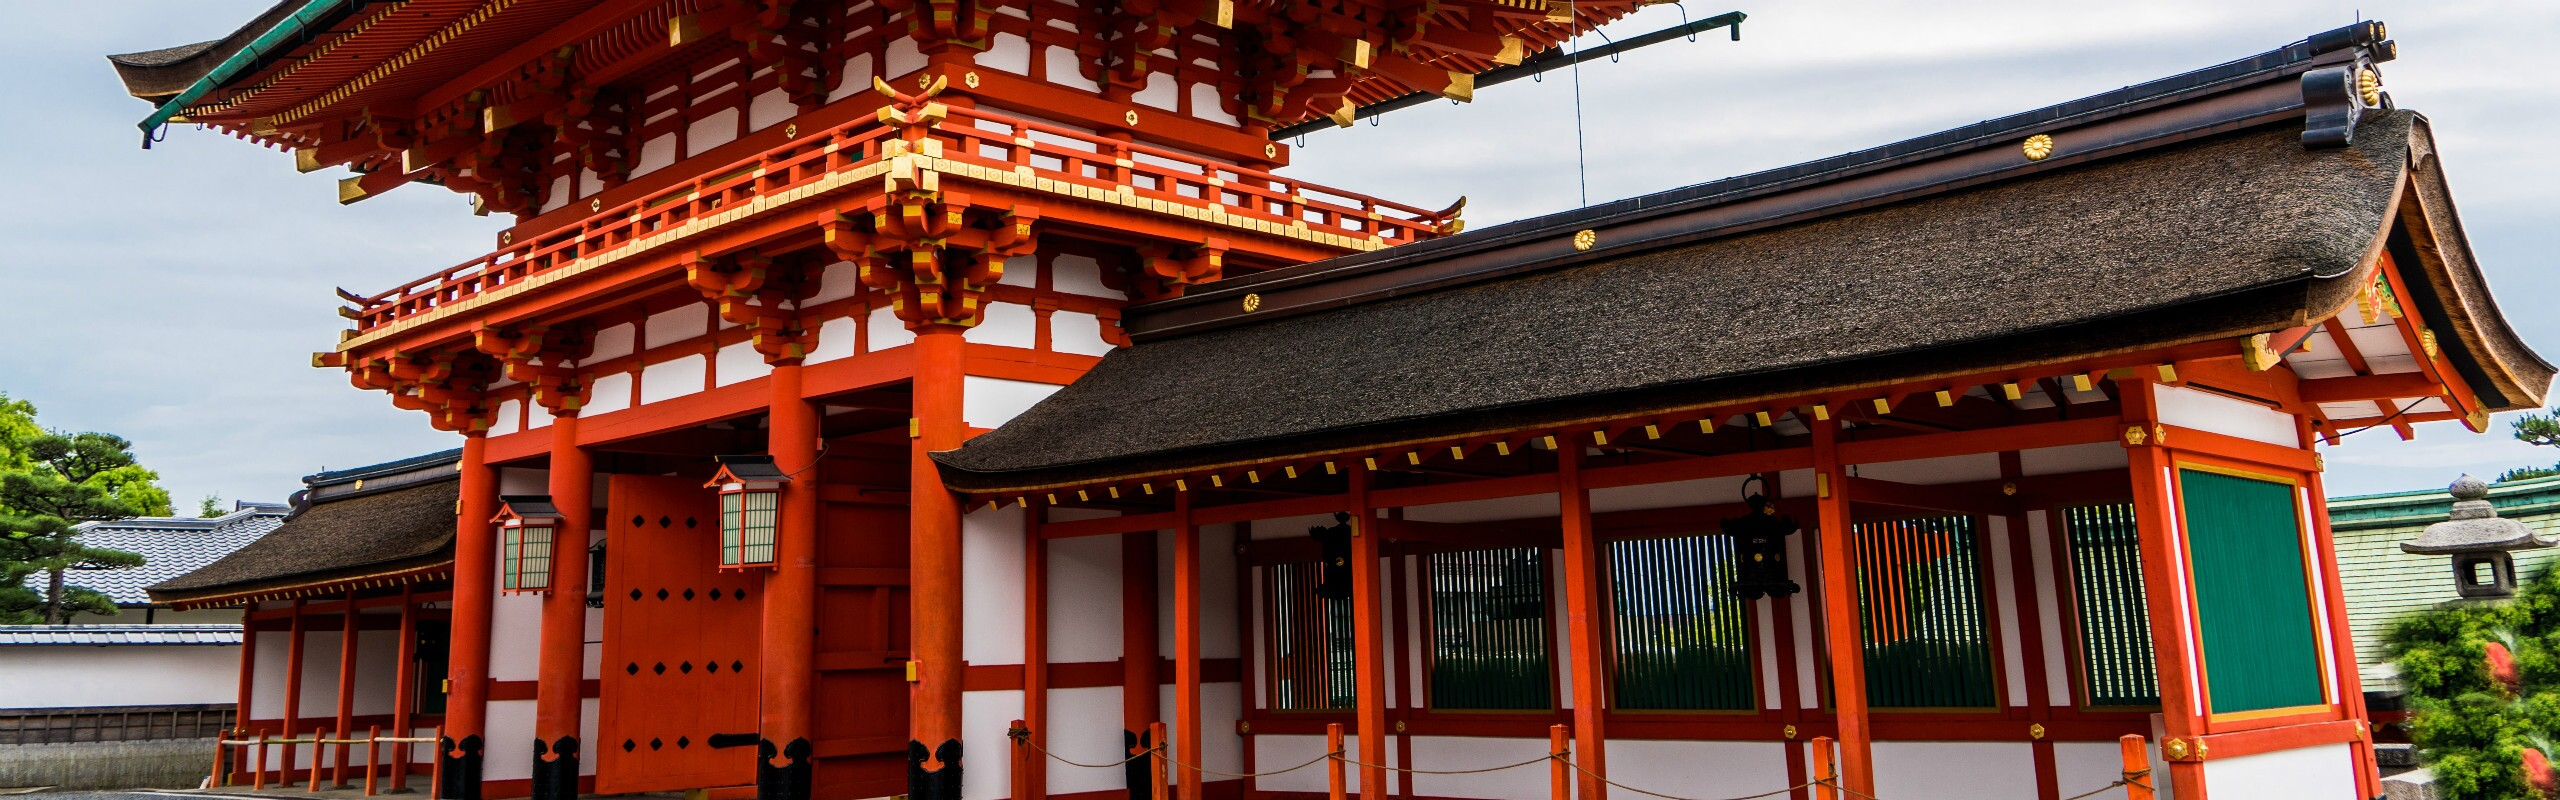 Shinto in Japan – What Is The Primary Religion in Japan?